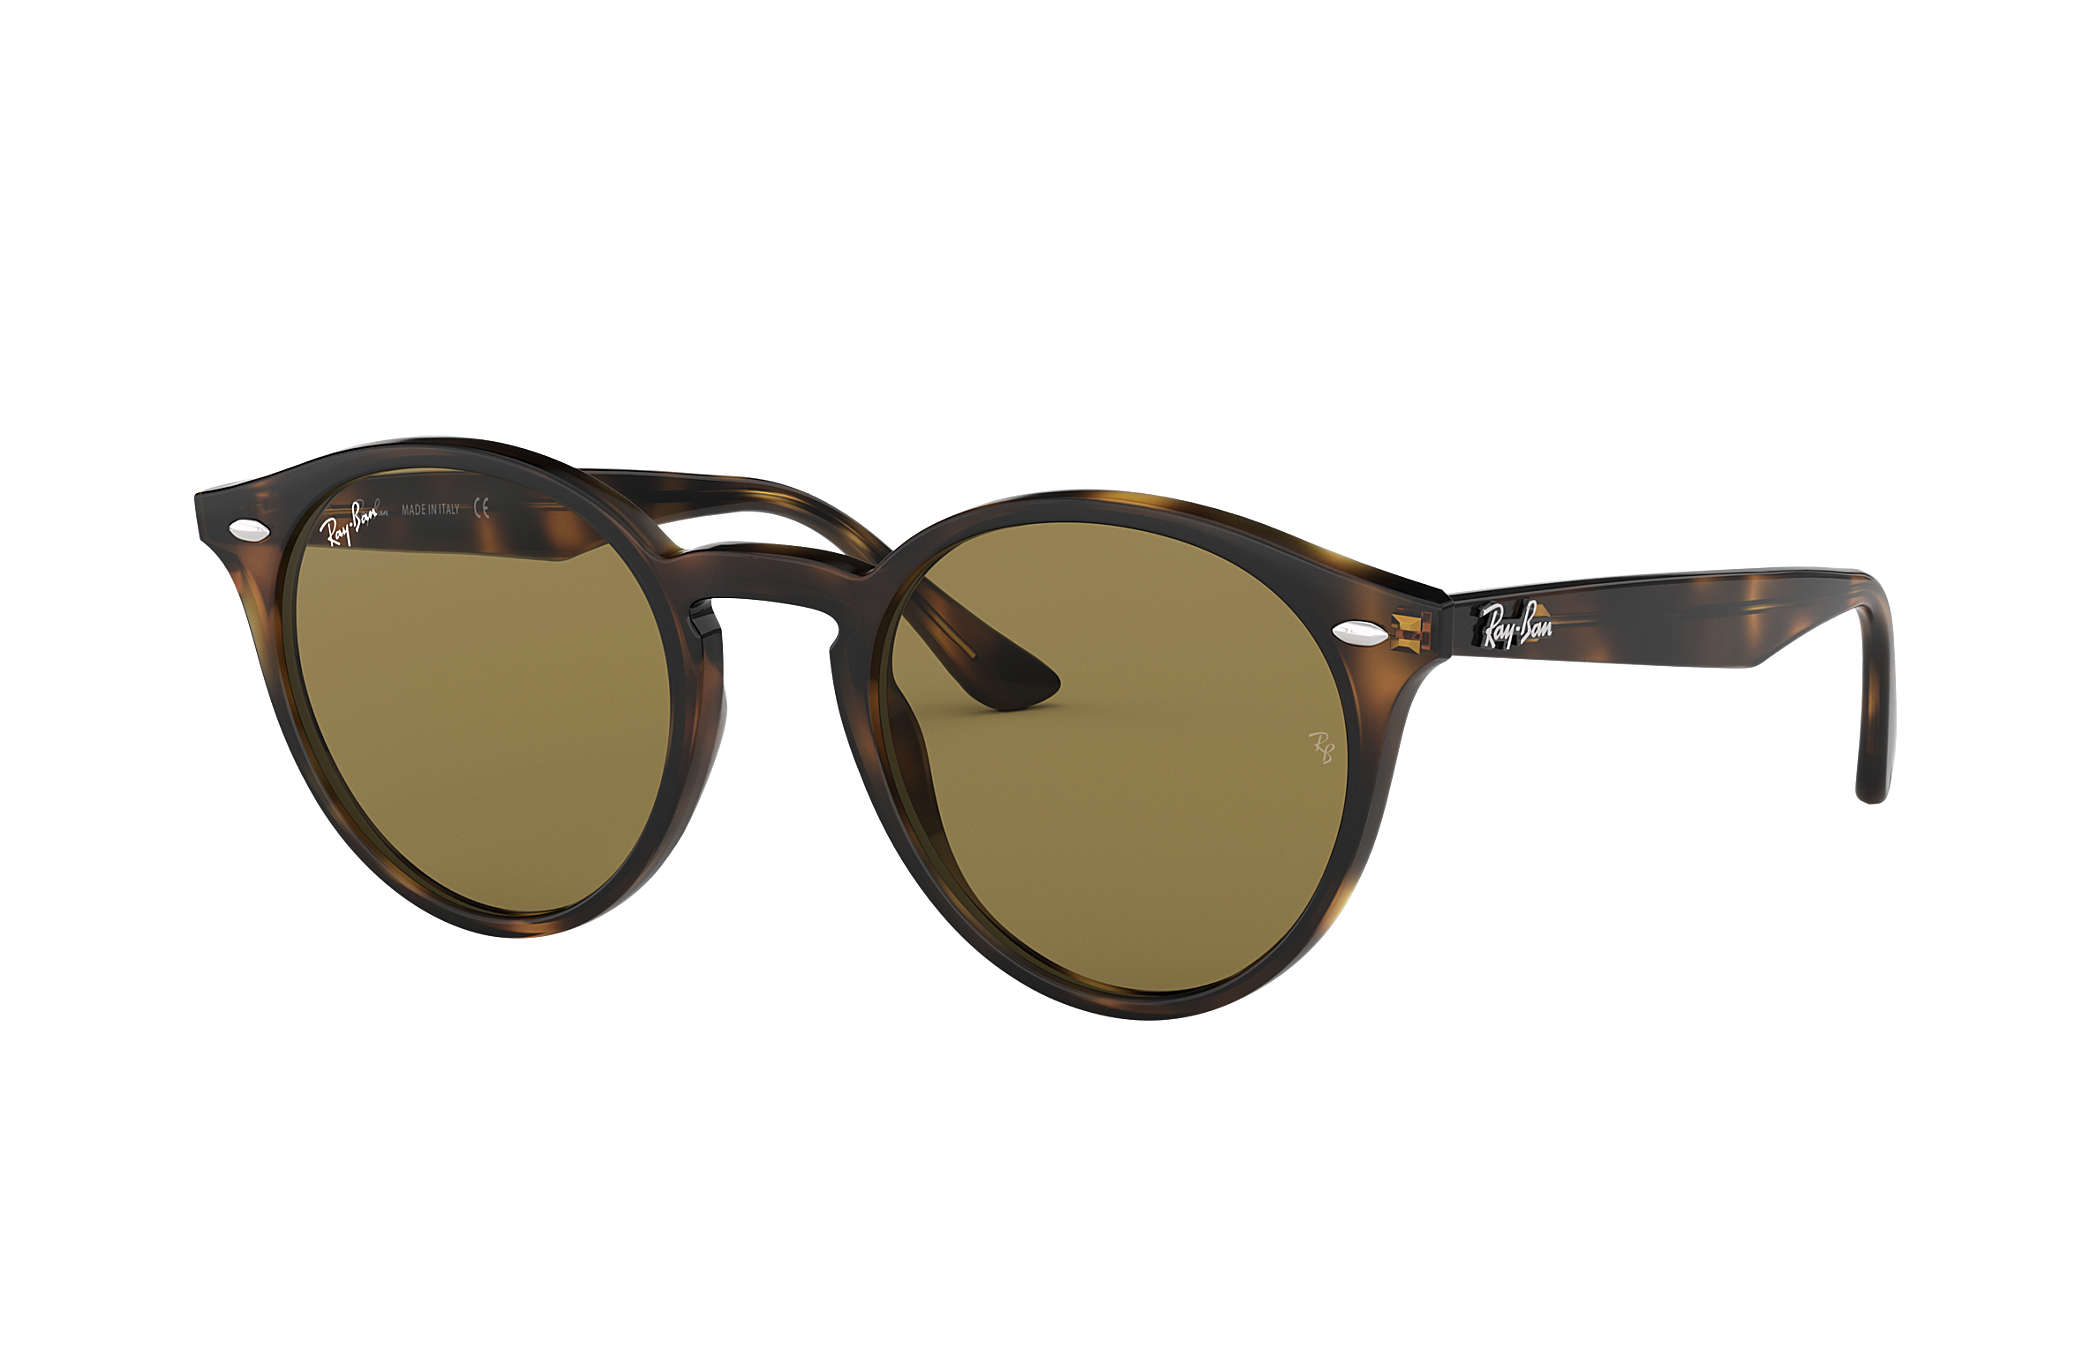 Ray-Ban RB2180 Tortoise - Acetate - Brown Lenses - 0RB2180710 7349 ... 99f6fb6345